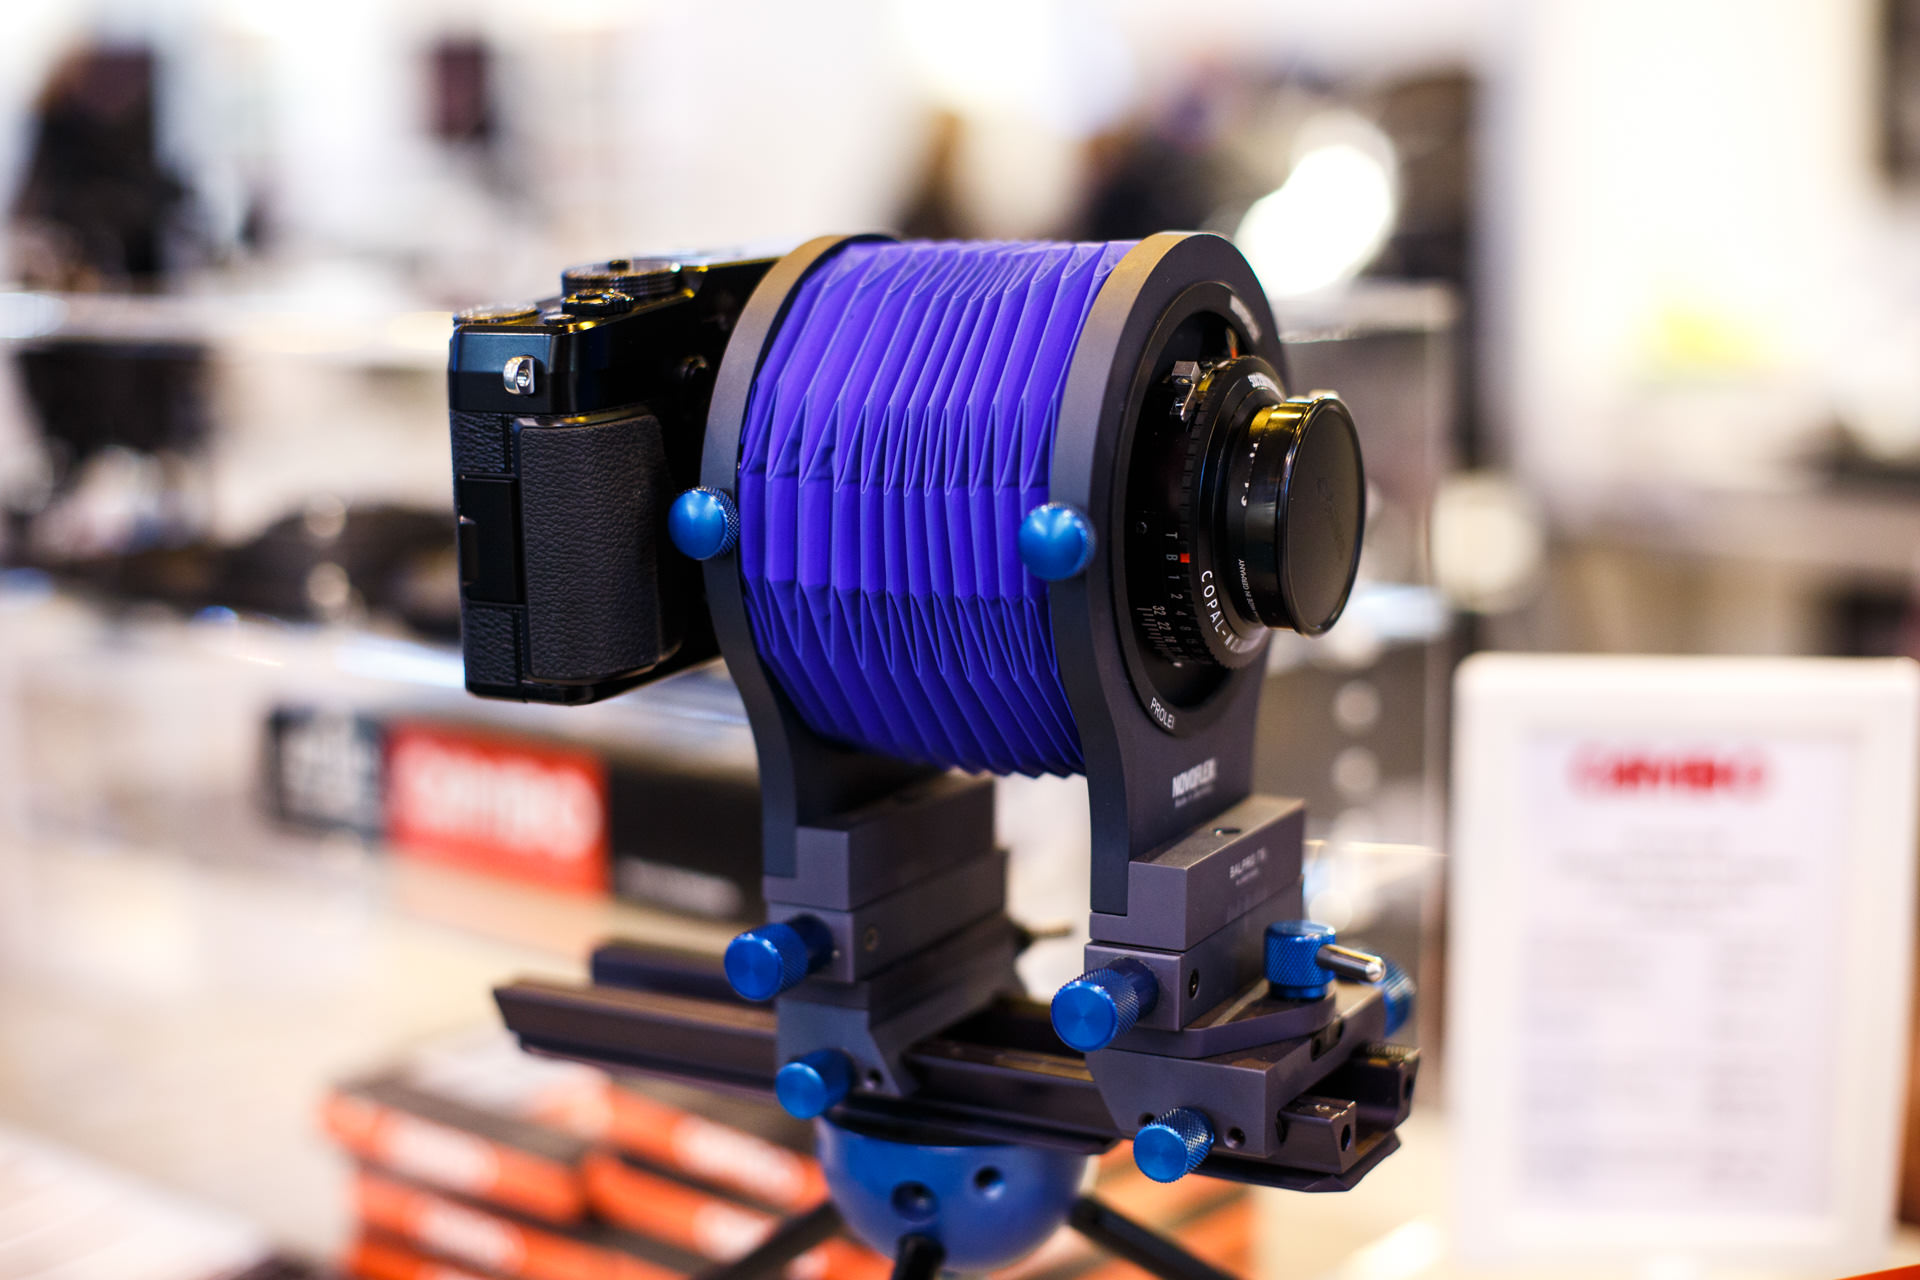 ...attaching a camera body on one end of the bellows, and a lens on the other, you have the ability to  tilt/shift  with a variety of cameras and lenses...